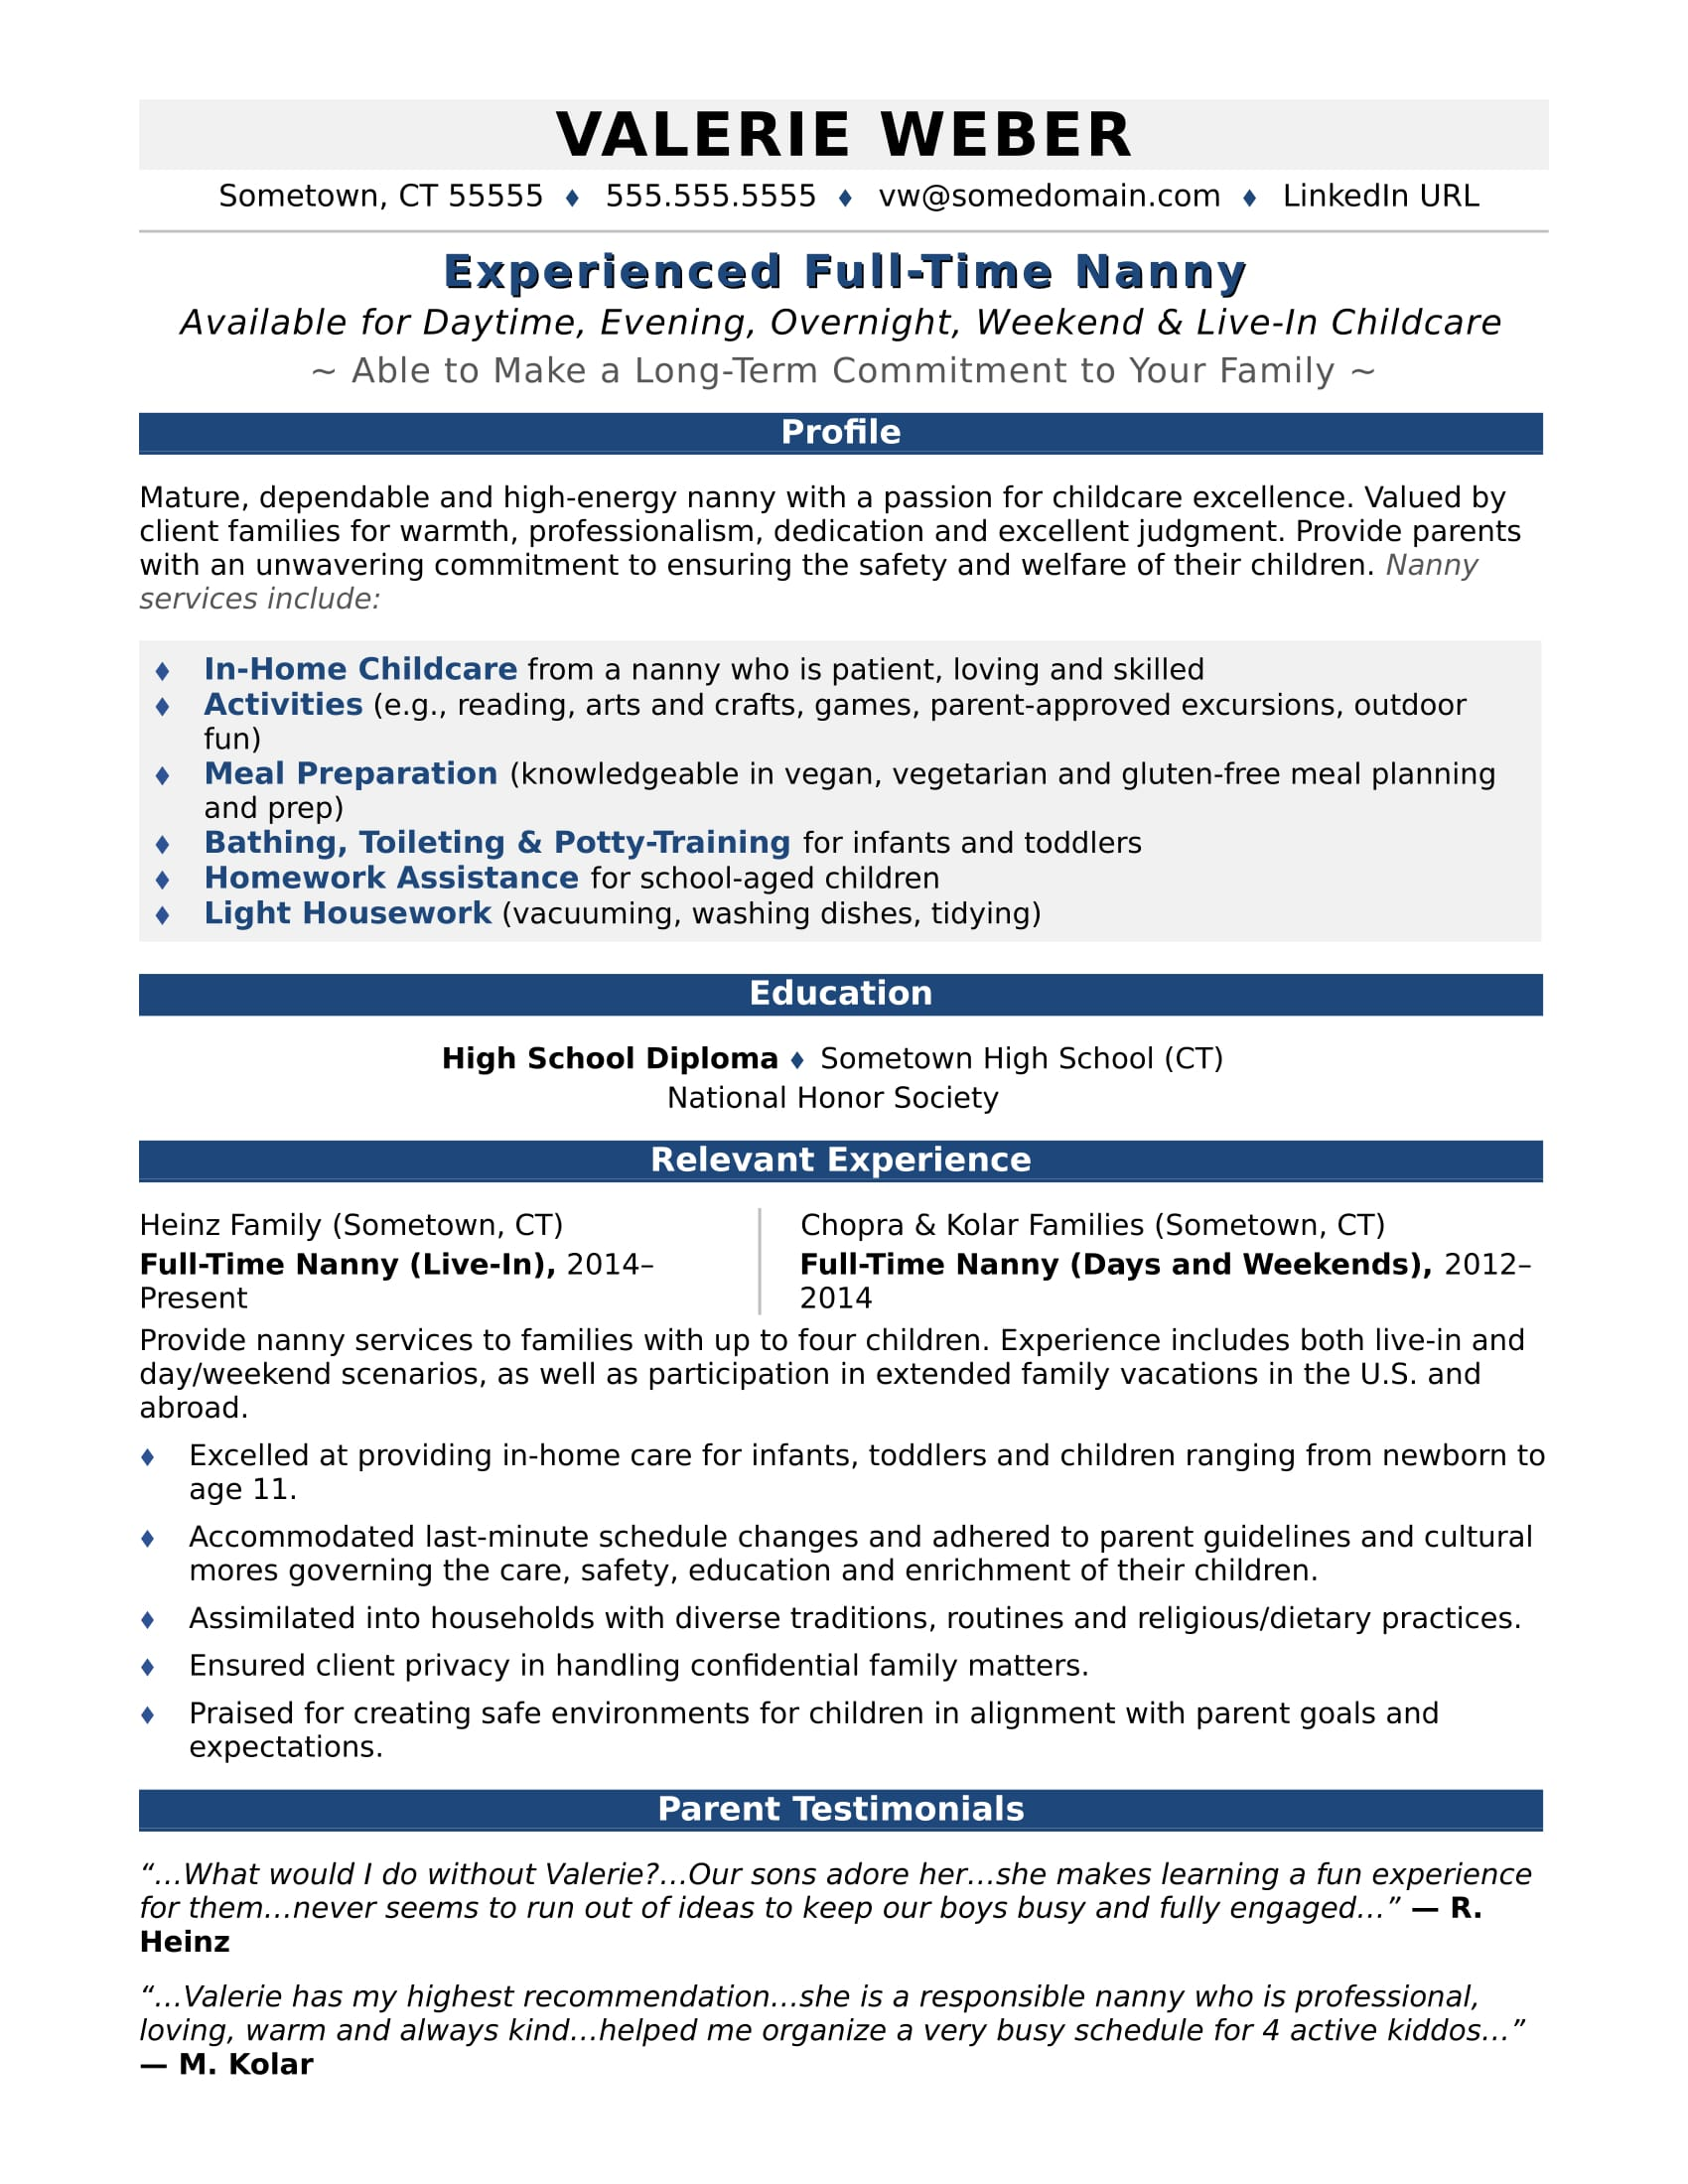 nanny resume sample monster samples free review service best titles lecturer experience Resume Nanny Resume Samples Free